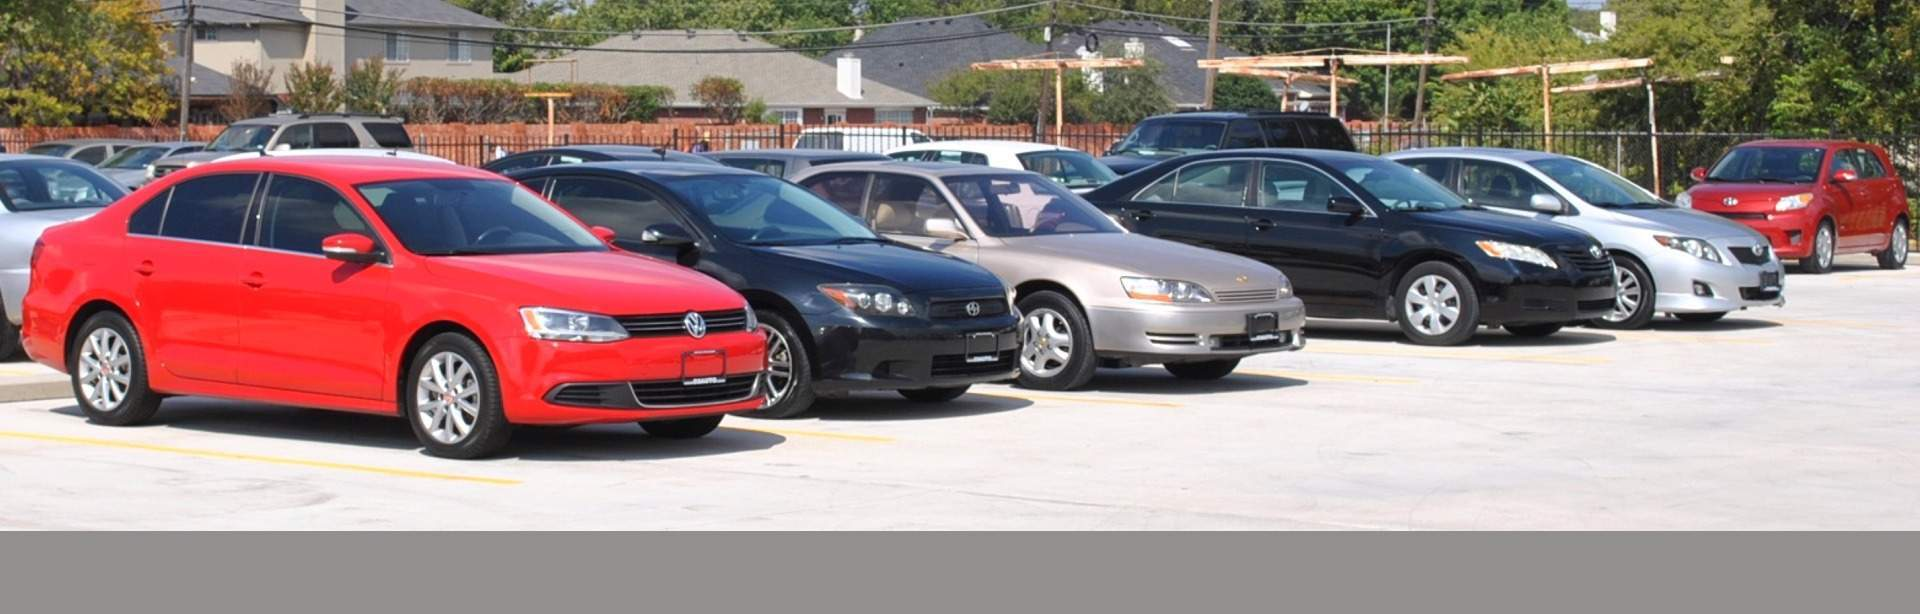 High Quality Low Mileage & Priced Used Cars, Trucks, Vans and SUVs priced from $5,000.00 to $15,000.